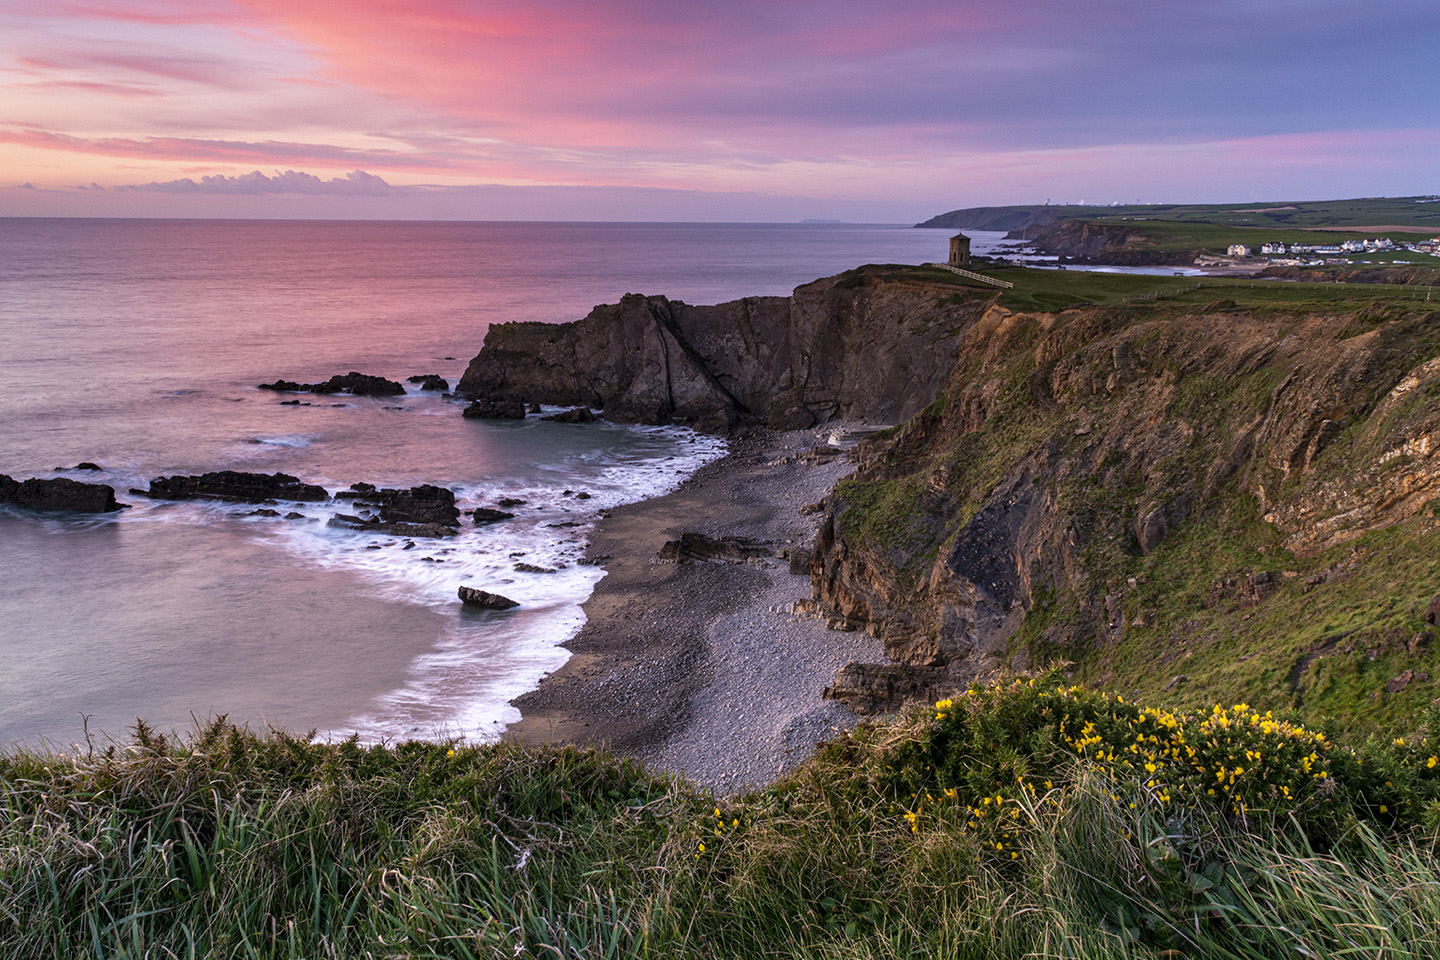 Pink Hues over Pepper Pot - Compass Point, Bude